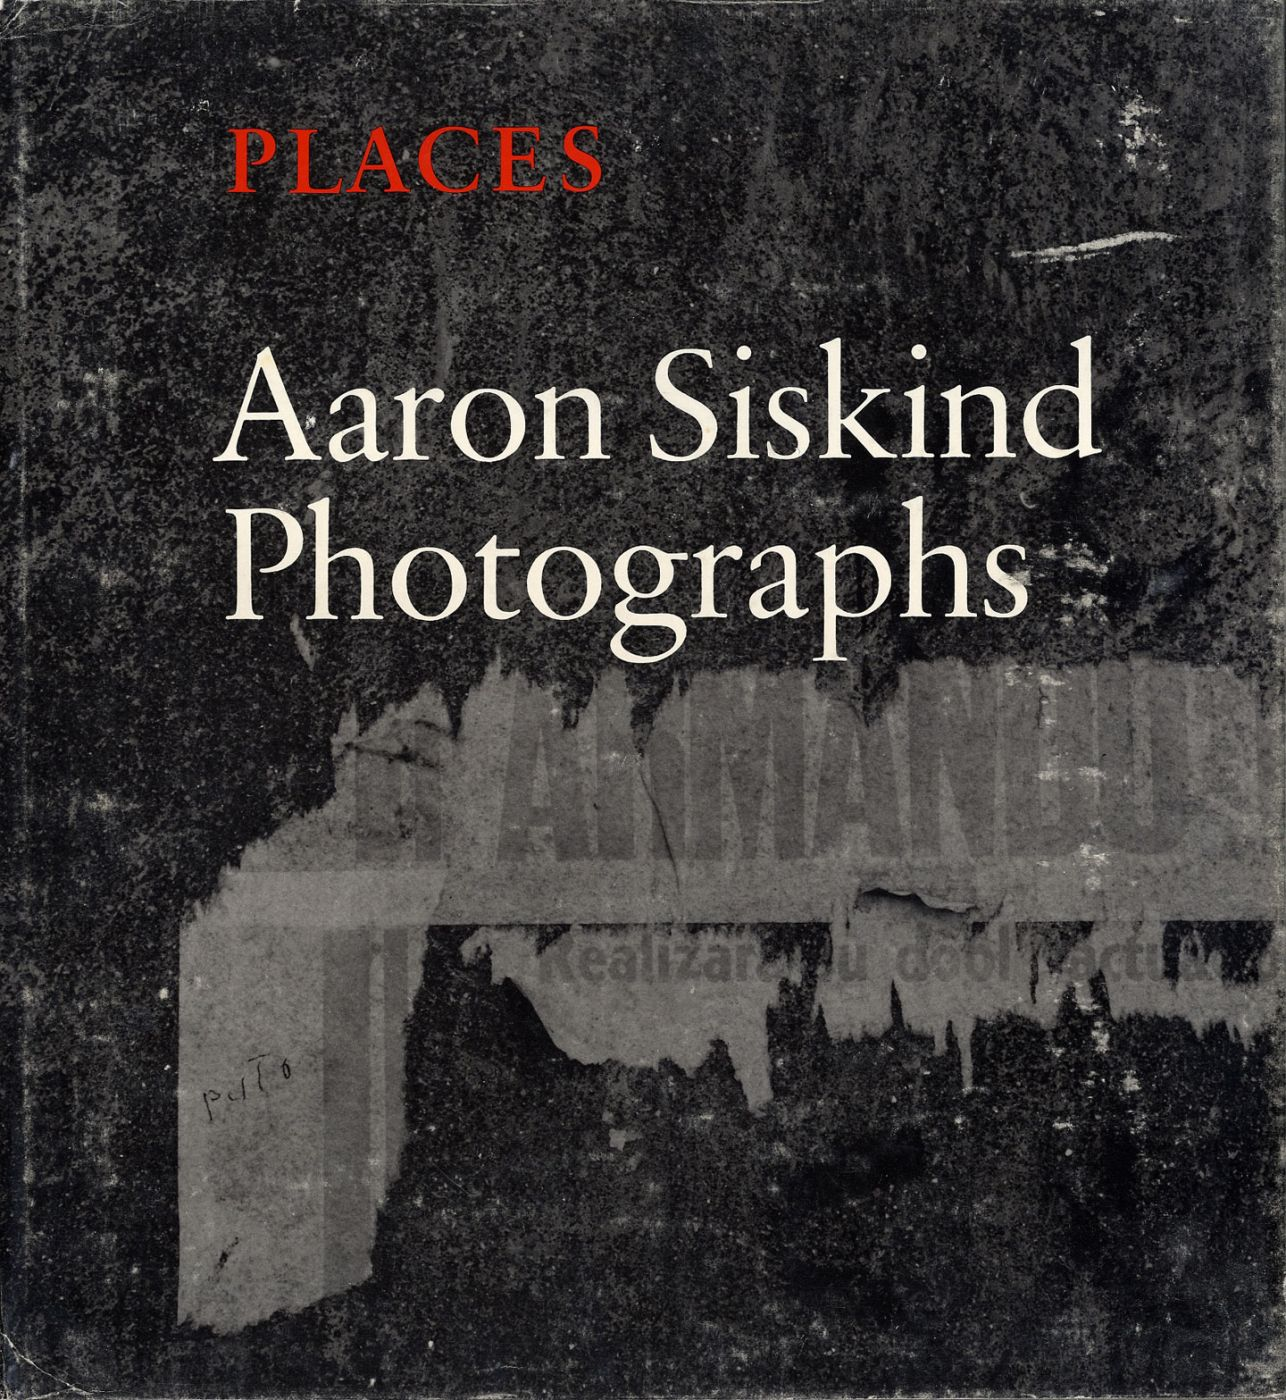 Places: Aaron Siskind, Photographs (Softbound Edition)